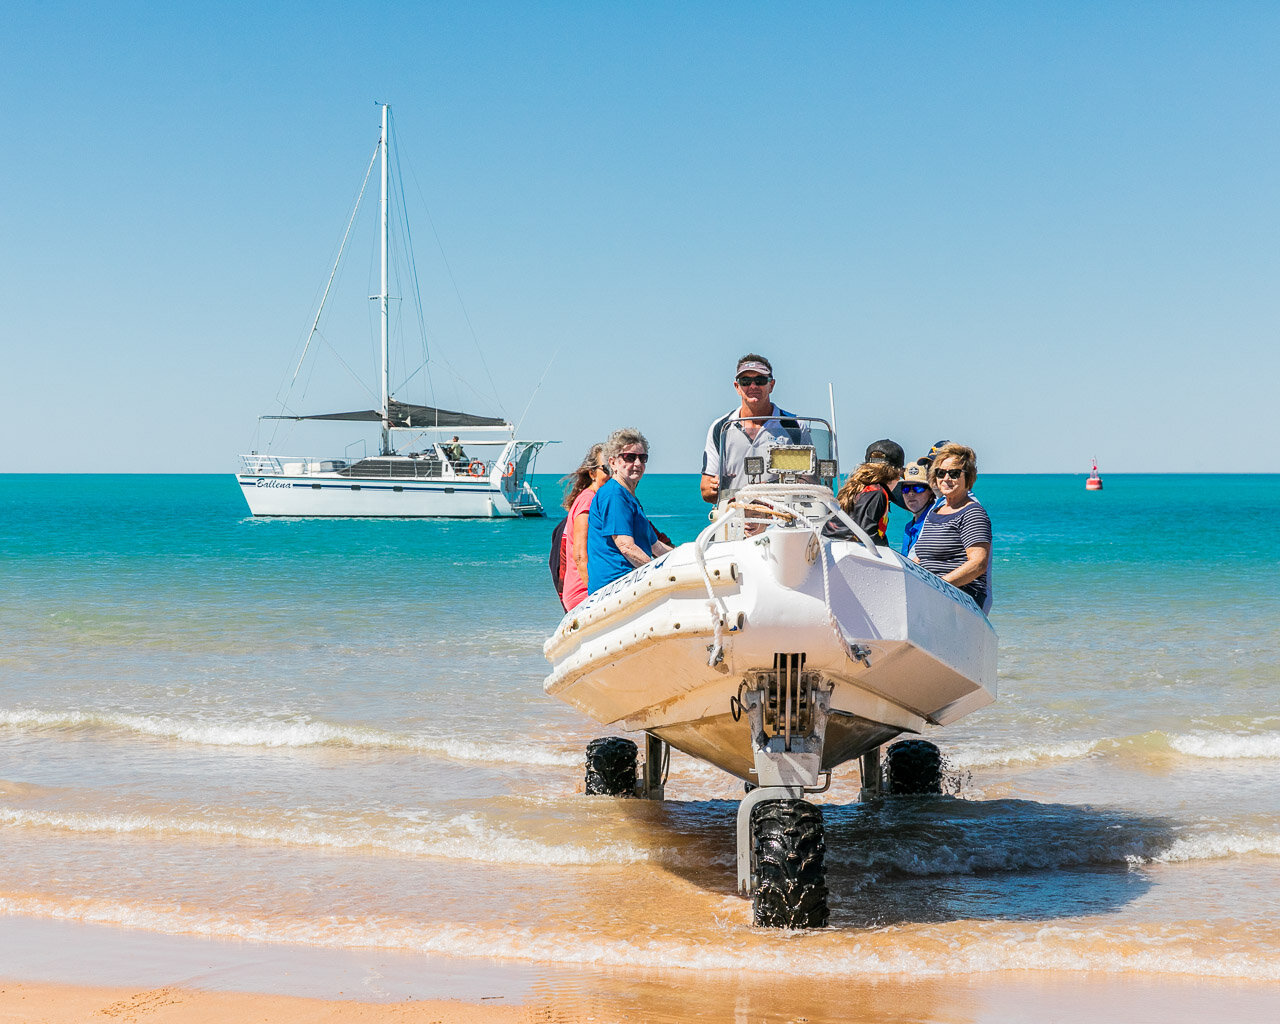 Cam of Broome Whale Watching ferrying passengers back to shore in their amphibious boat